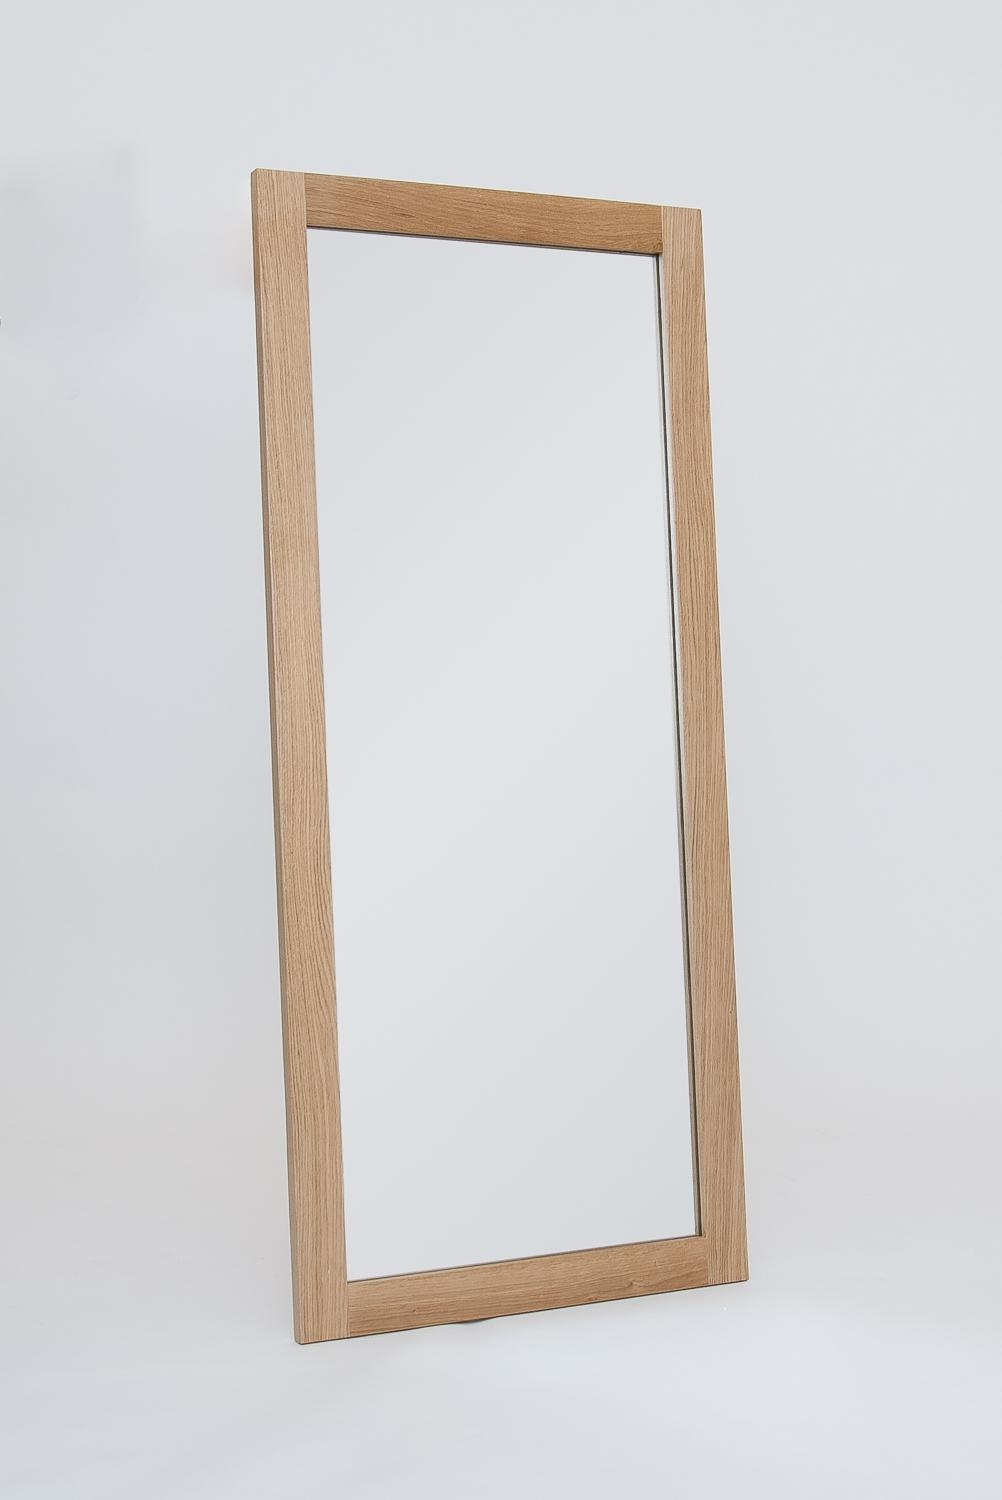 Large Oak Mirror – Hereford Oak | Oak Furniture Solutions With Regard To Large Oak Mirrors (View 5 of 20)